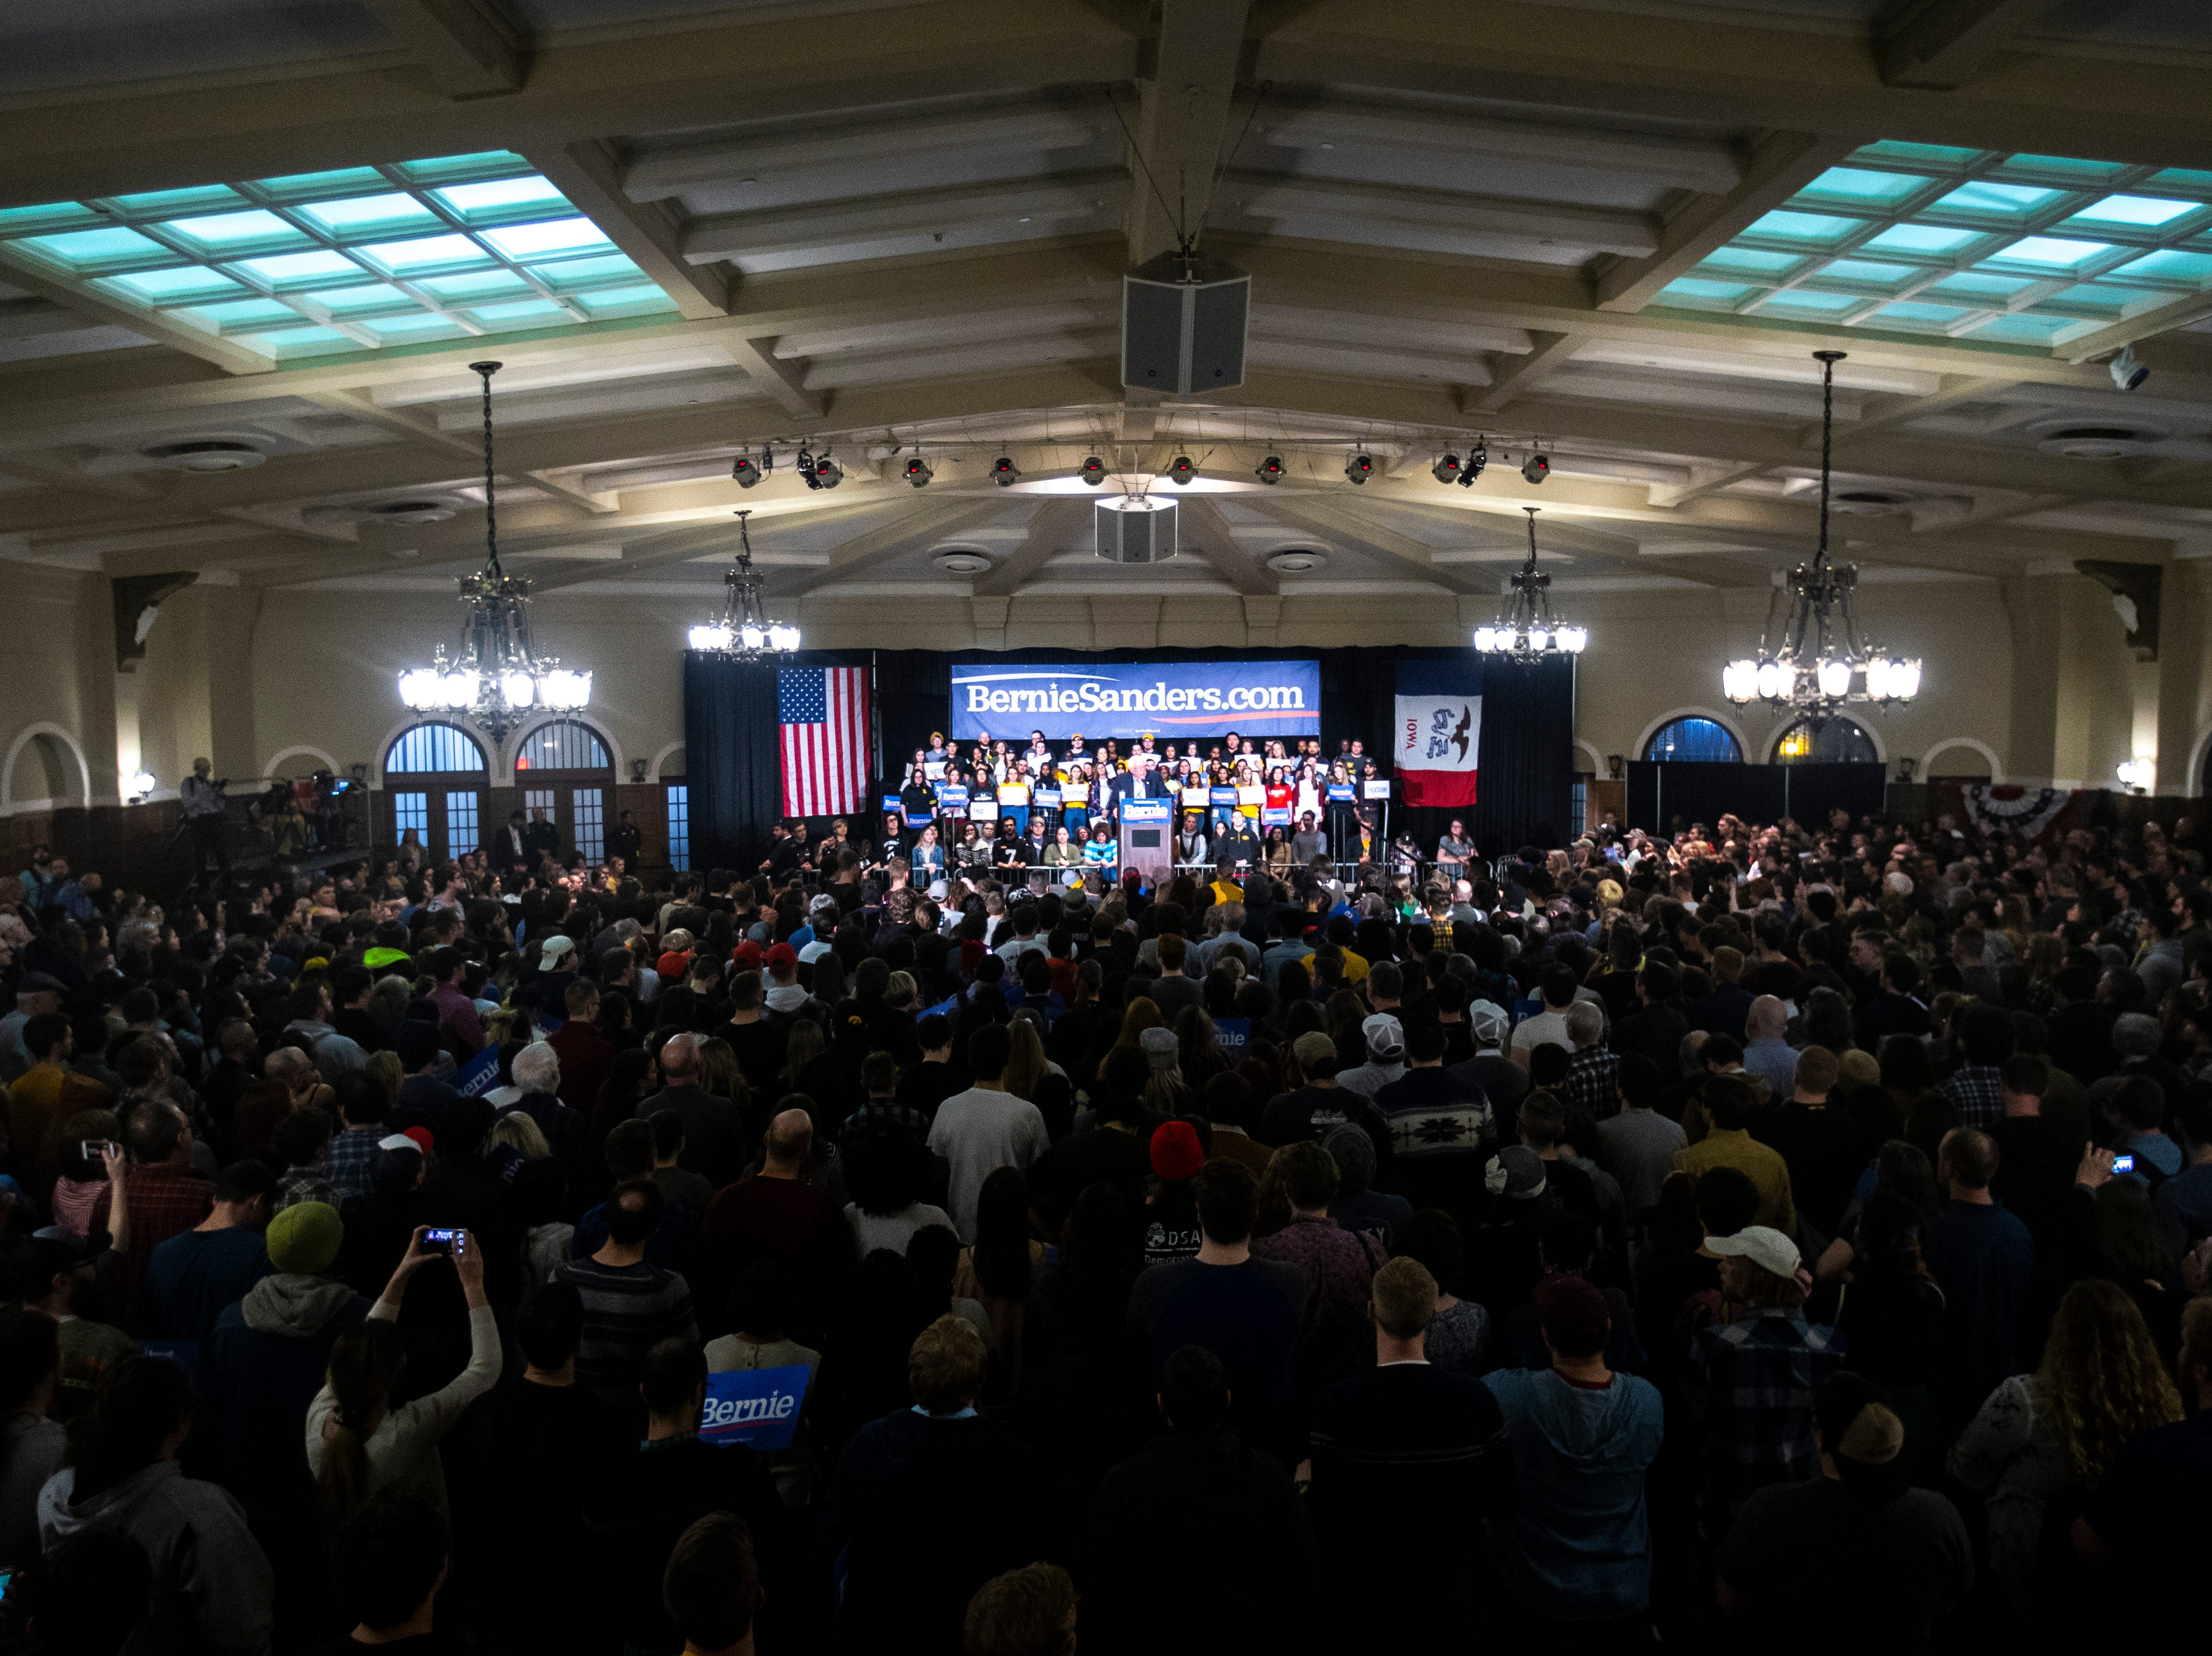 U.S. Sen. Bernie Sanders, I-VT, speaks at an event during his first trip to the state ahead of the caucus, Friday, March 8, 2019, at the Iowa Memorial Union on the University of Iowa campus in Iowa City, Iowa. The official crowd size from the campaign was 1,804, including the overflow crowd that Sanders spoke to before his main speech.